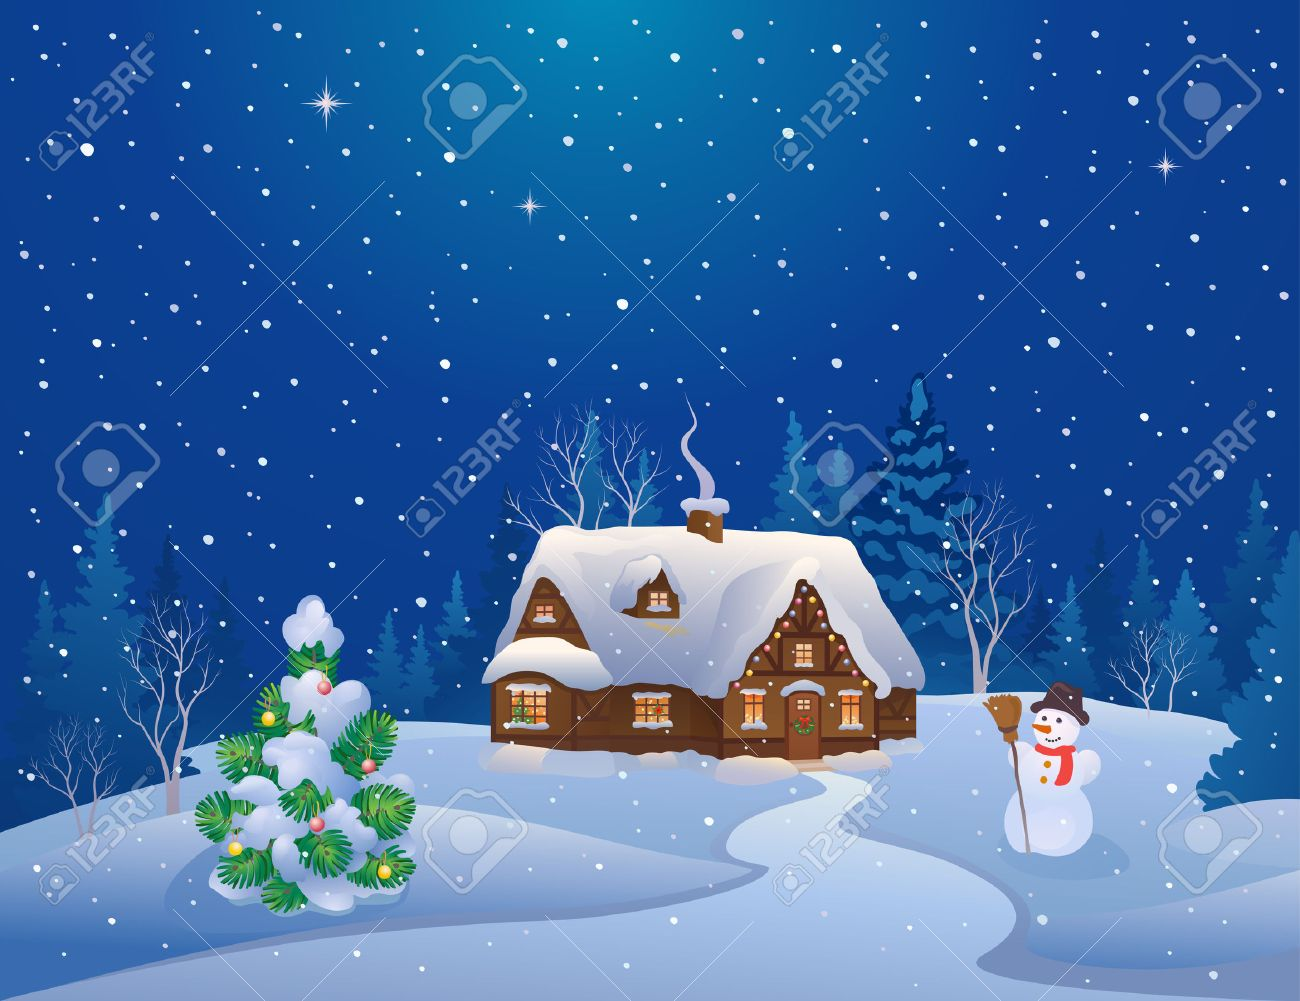 Vector Illustration Of A Snowy Christmas Night Scene With A Home ...